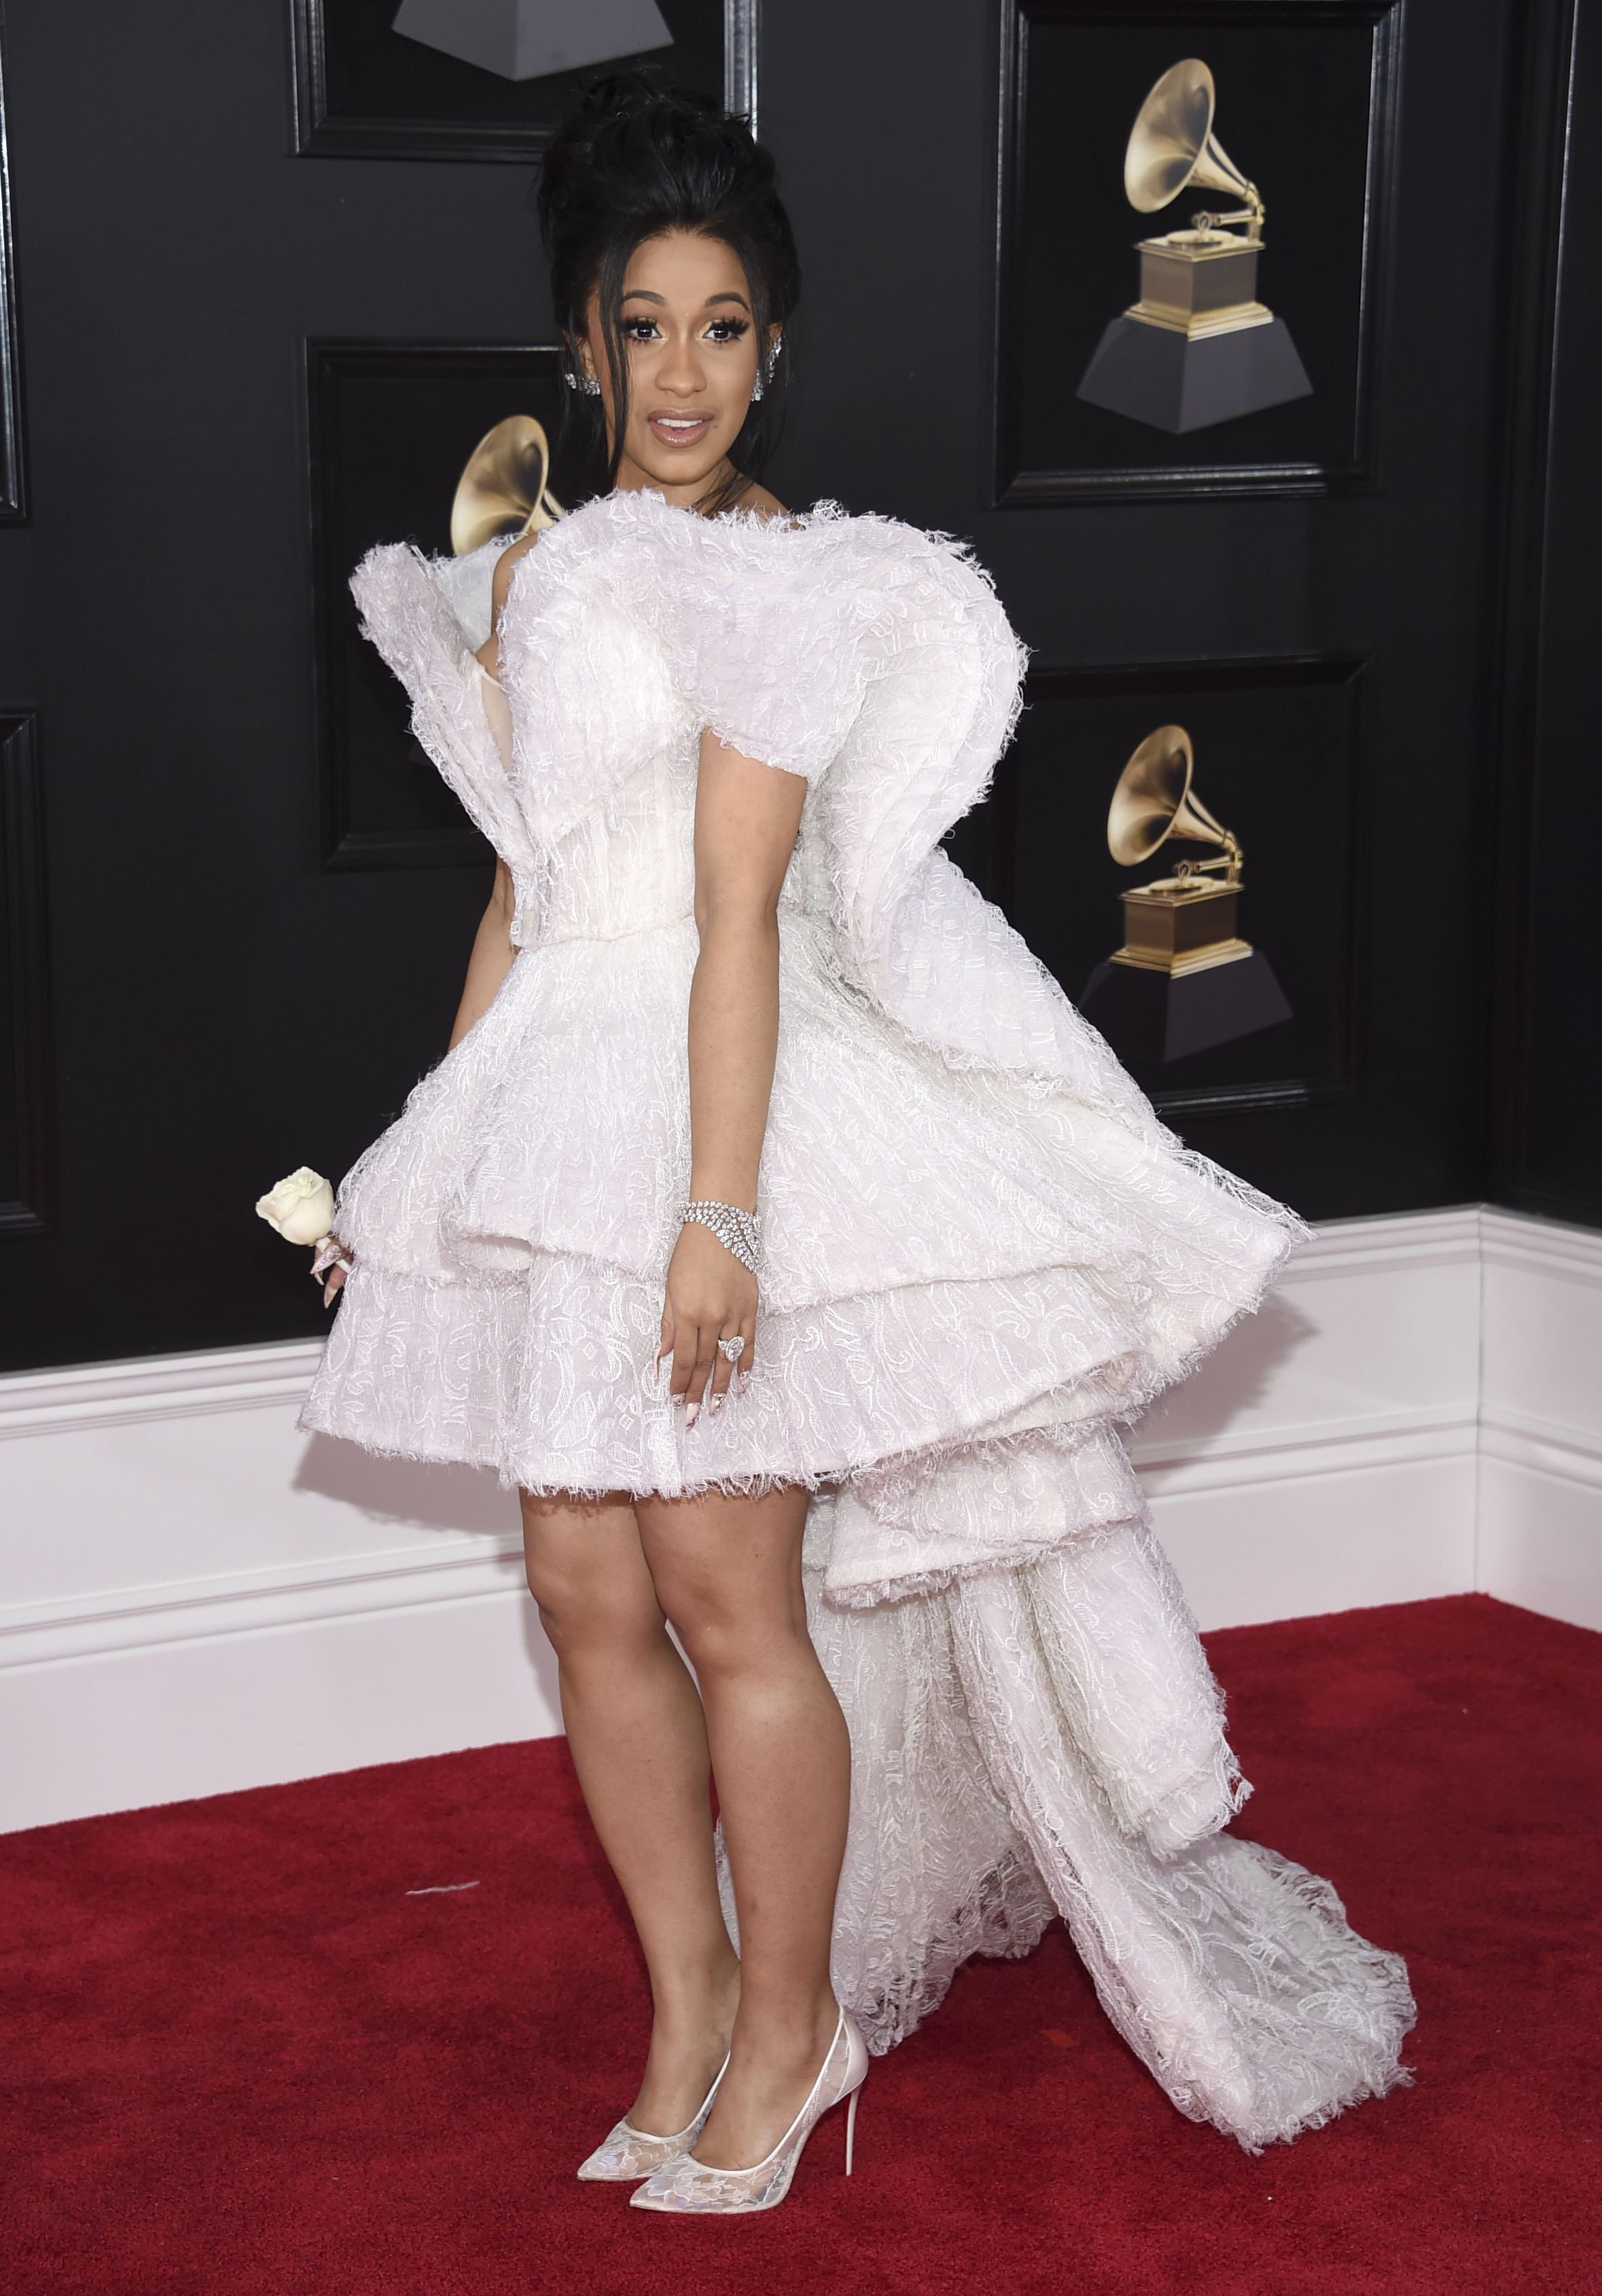 <div class='meta'><div class='origin-logo' data-origin='AP'></div><span class='caption-text' data-credit='Evan Agostini/Invision/AP'>Cardi B arrives at the 60th annual Grammy Awards at Madison Square Garden on Sunday, Jan. 28, 2018, in New York.</span></div>